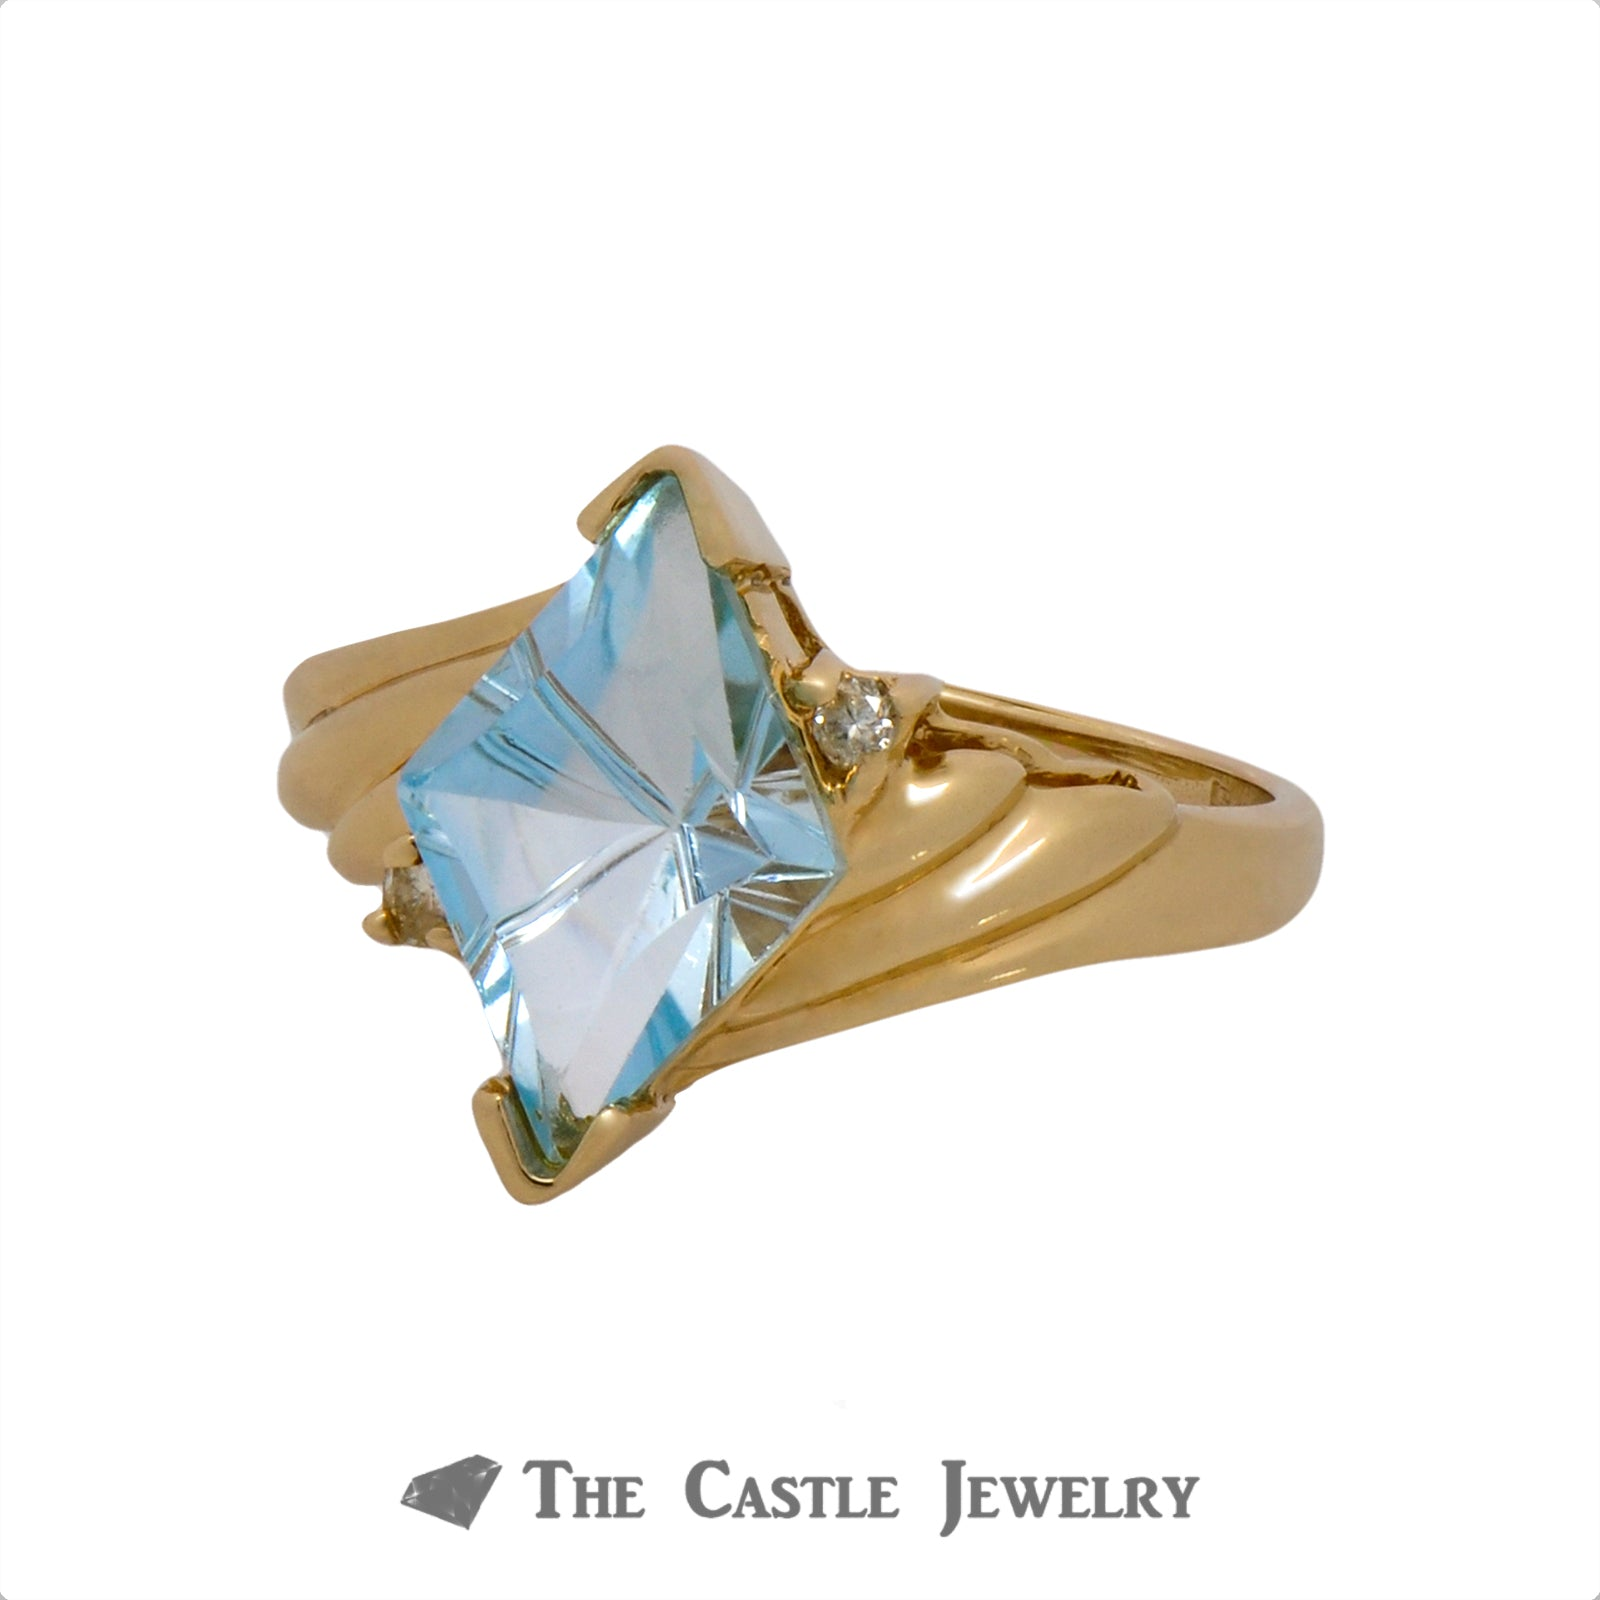 Unique Kite Cut Aquamarine Ring with Diamond Accents Crafted in Ridged 14k Yellow Gold Mounting-2